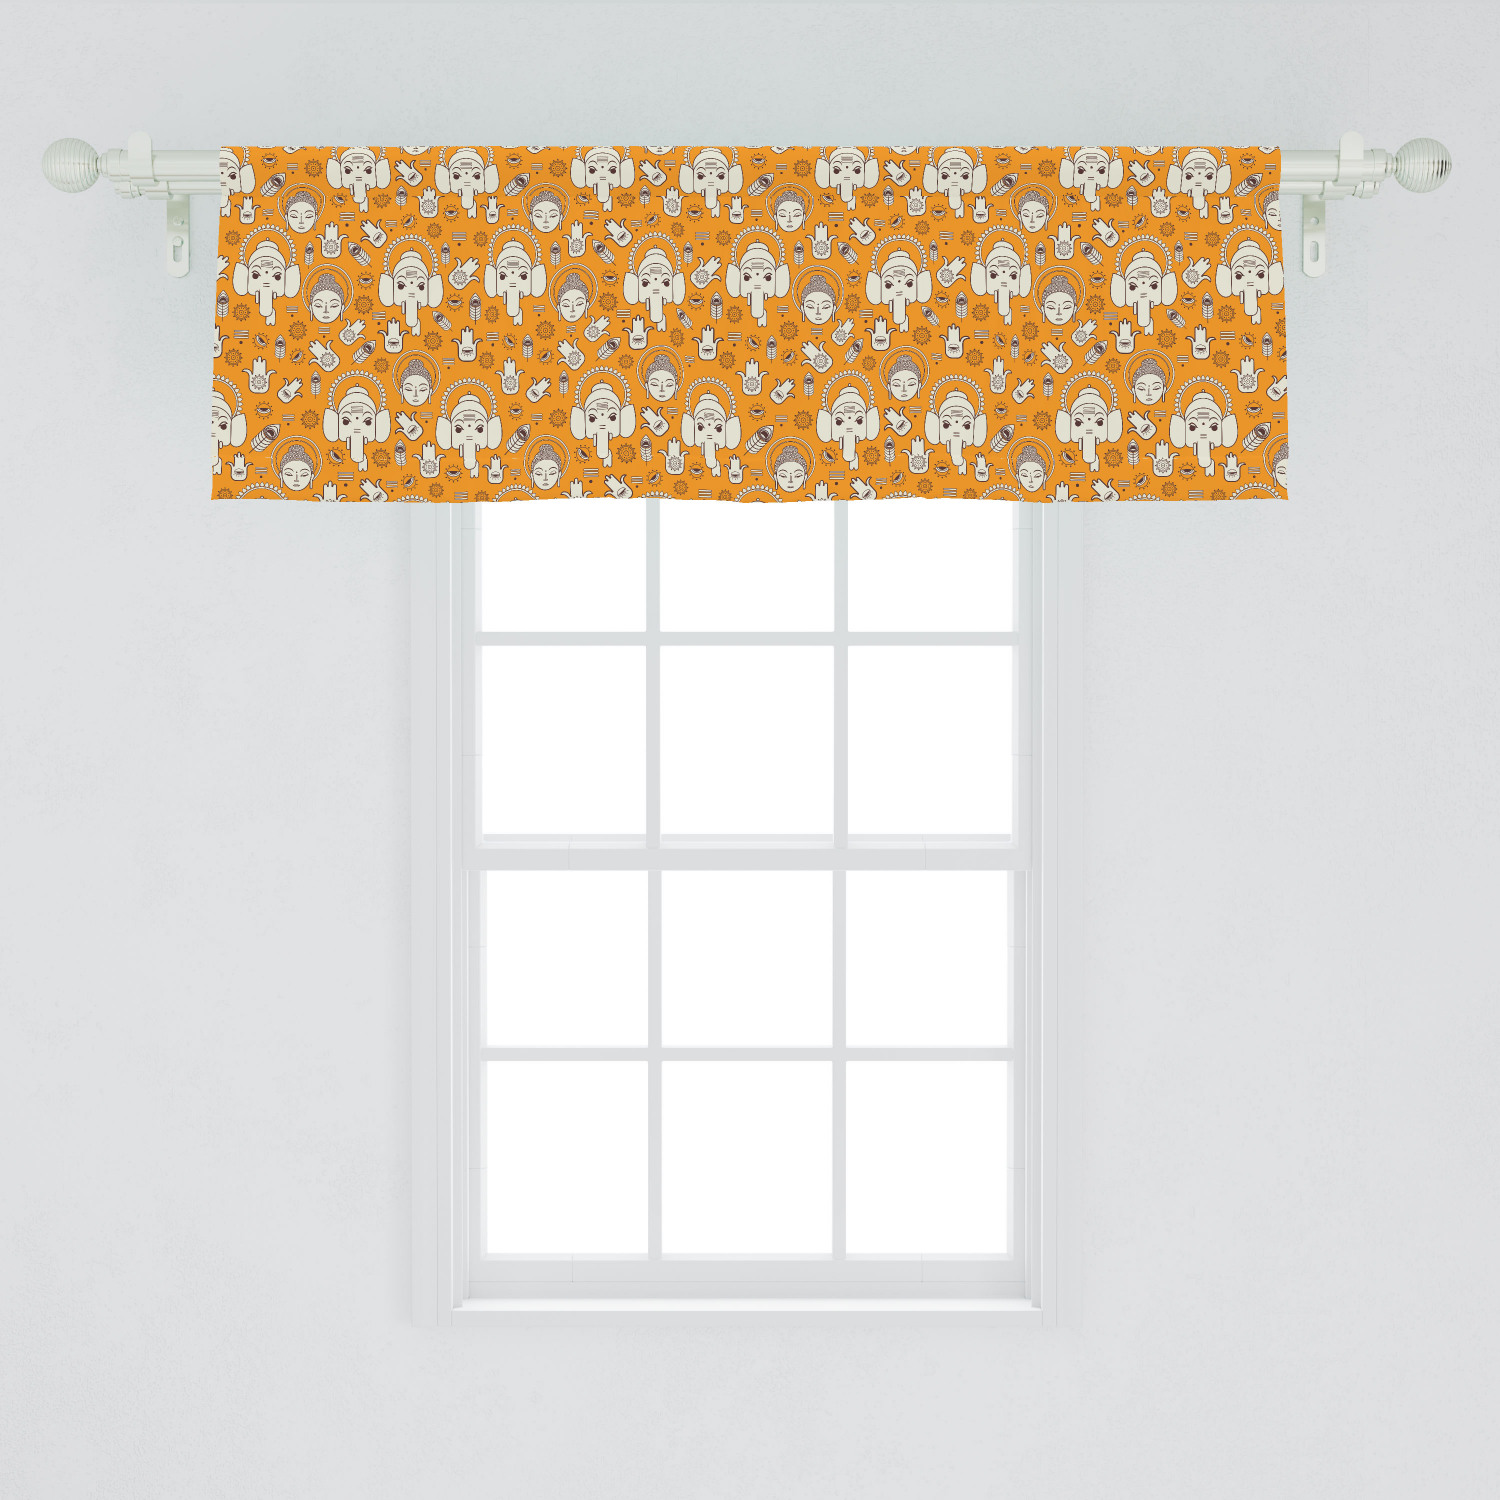 Ambesonne Ethnic Cultural Window Valance Curtain for Kitchen Bedroom in 2 Sizes